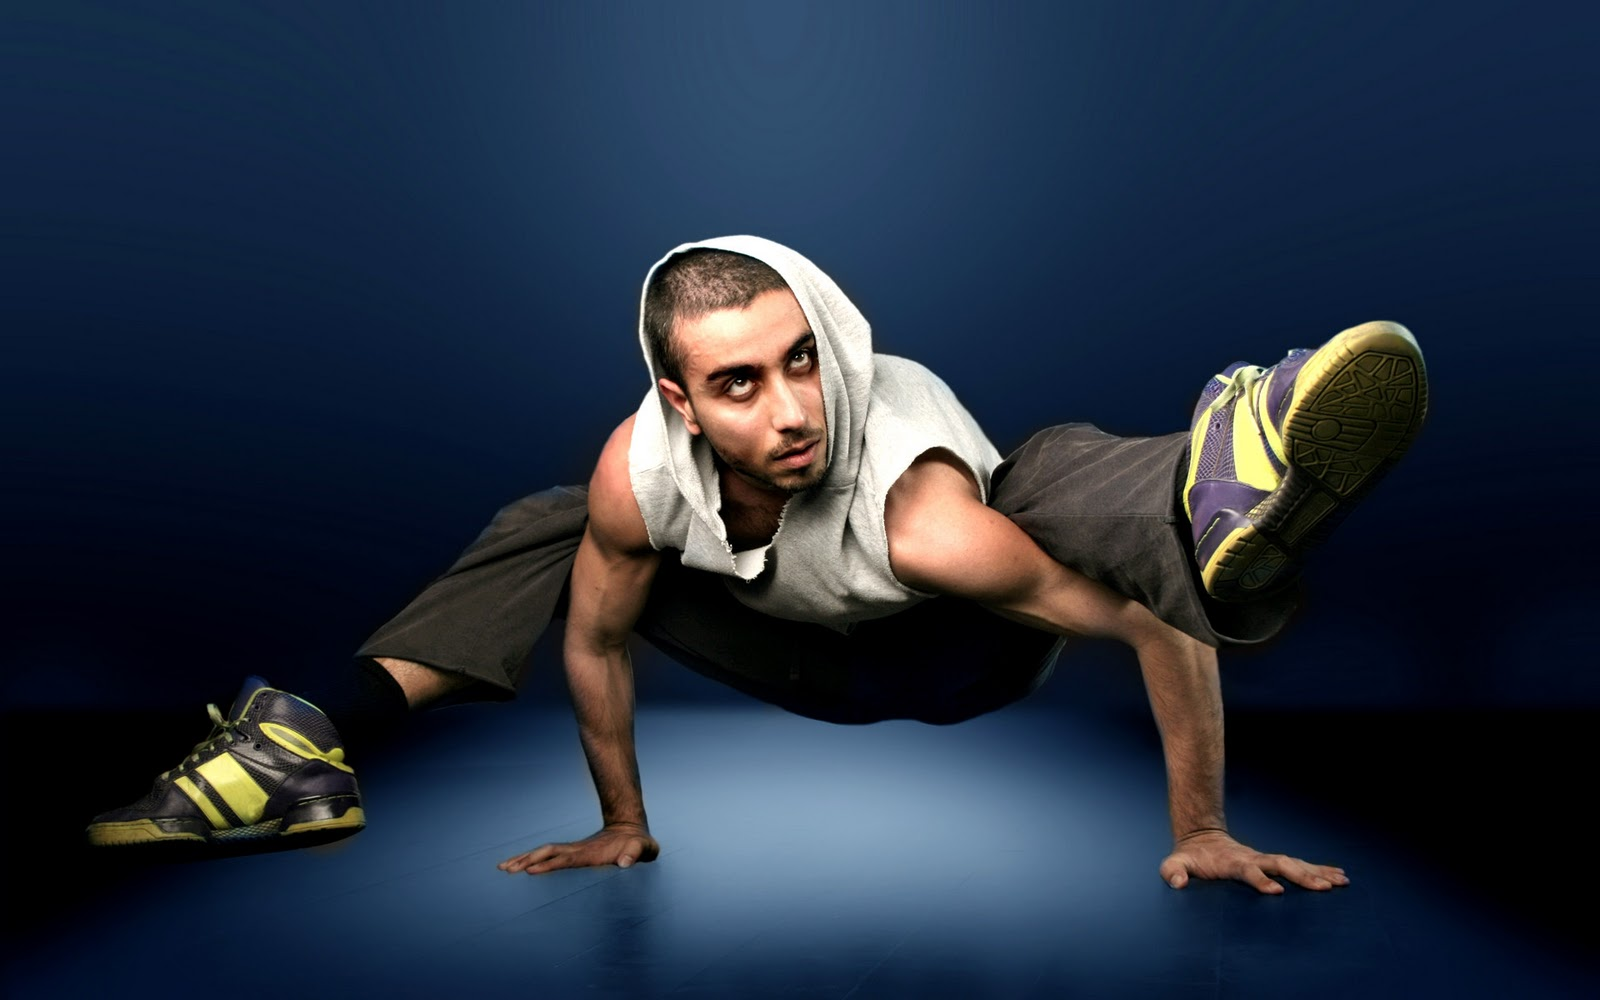 photo and wallpapers hip hop styles wallpapership hop